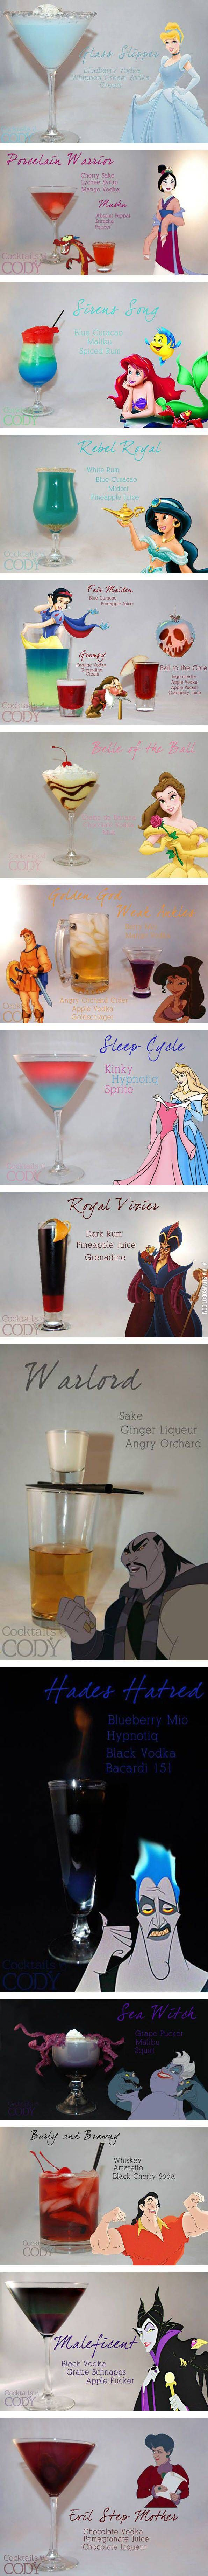 Disney princess cocktails.